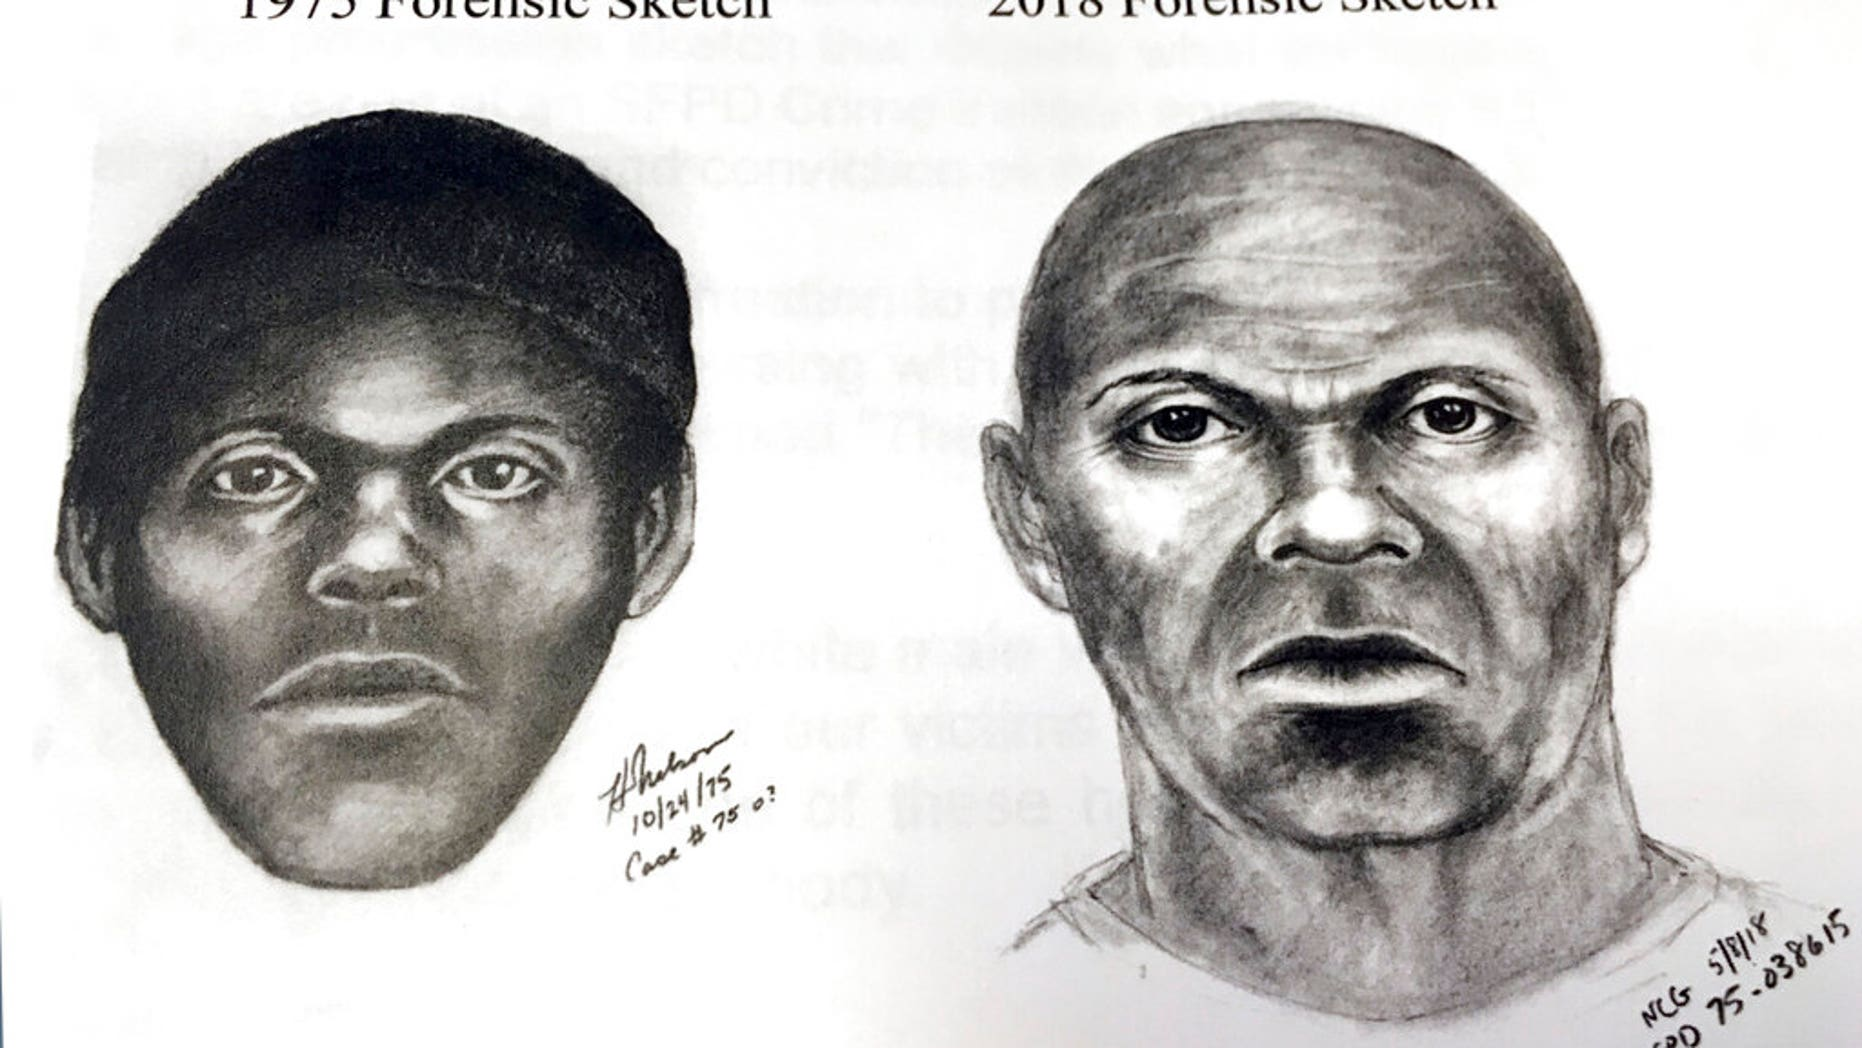 This pair of sketches provided by the San Francisco Police Department shows what a serial killer might look like now in a cold case involving at least five stabbing deaths of gay men in the mid-1970s in San Francisco.